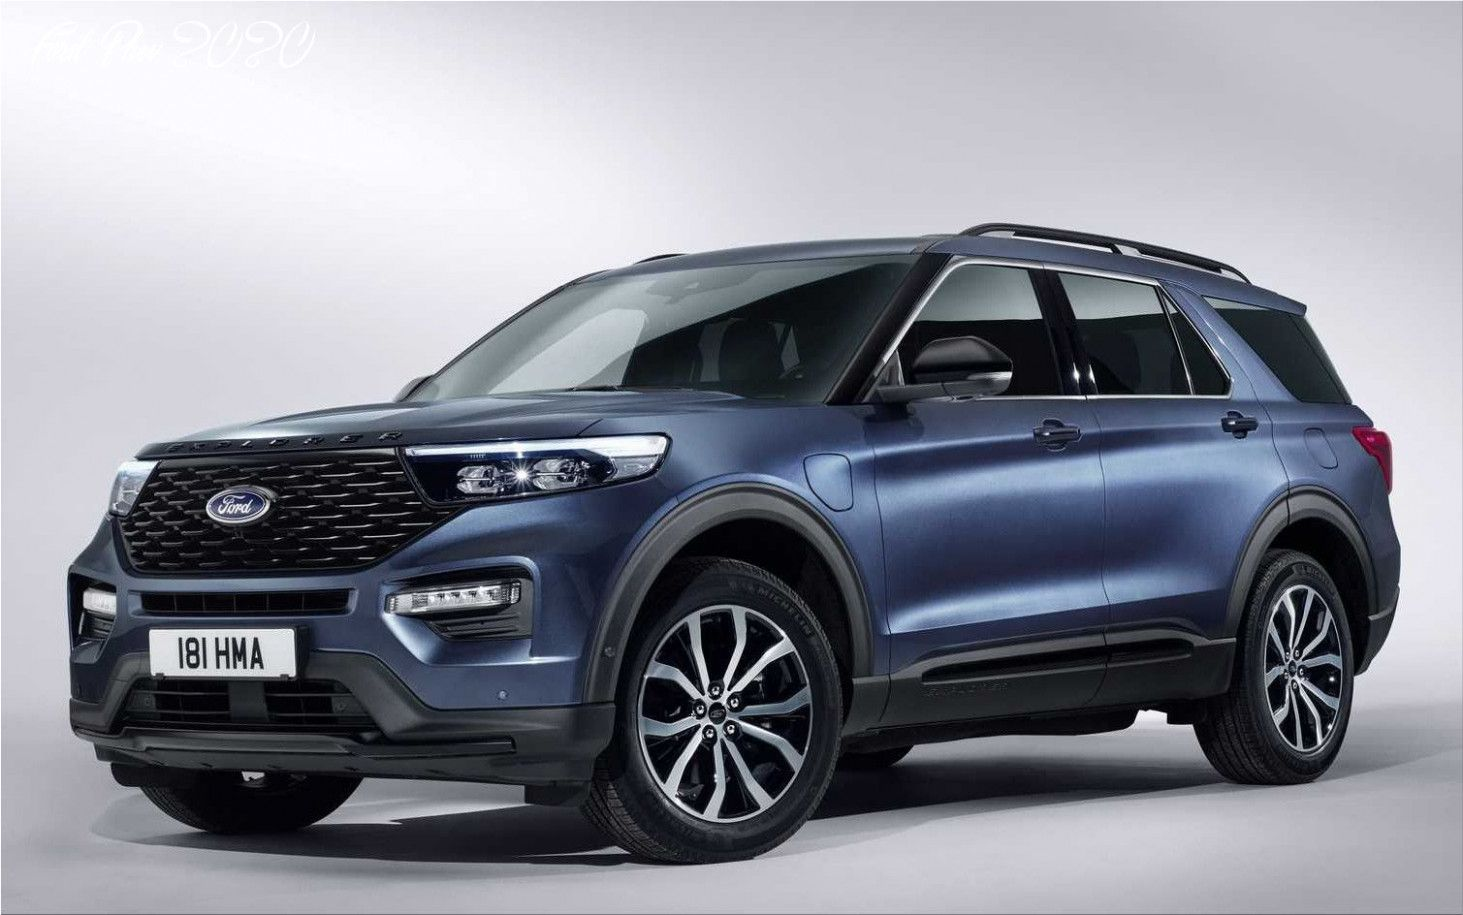 Ford Phev 2020 Engine In 2020 Ford Explorer Ford Suv 2020 Ford Explorer